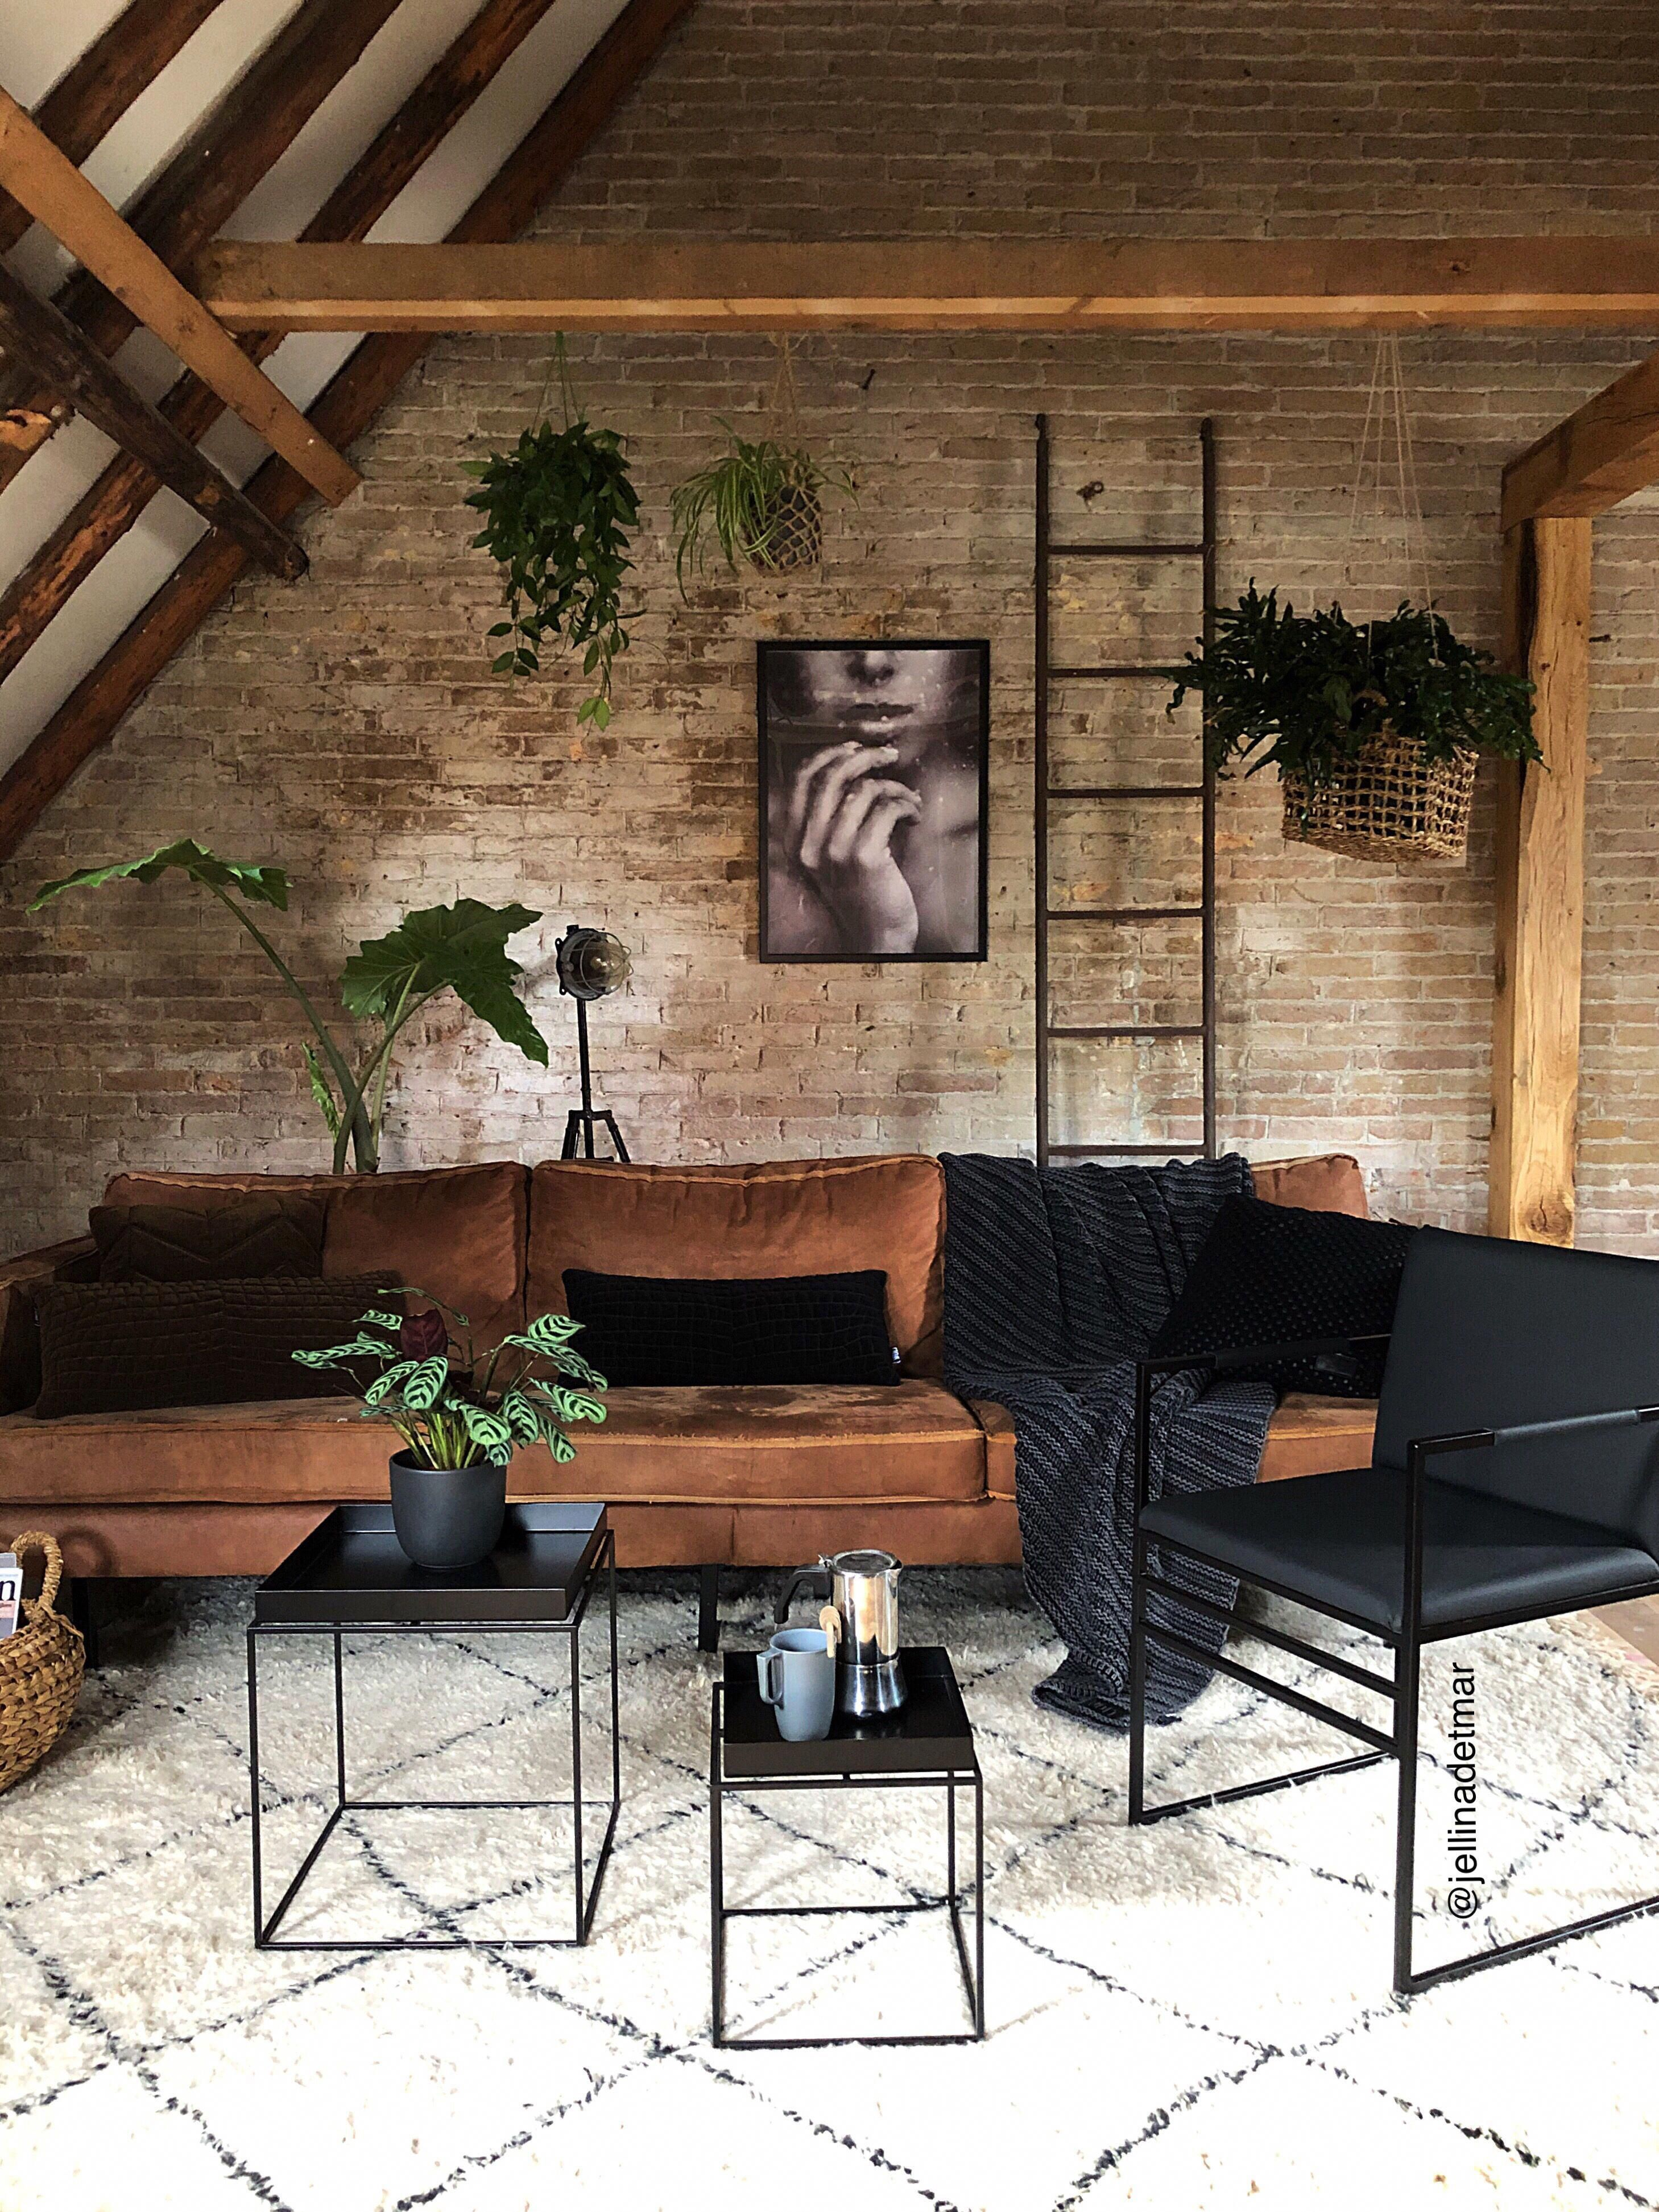 Apartment Styling Lovely Living Rooms And Scandi Interior Design White Walls Wooden Flo Industrial Home Design Industrial Interior Design Scandi Living Room